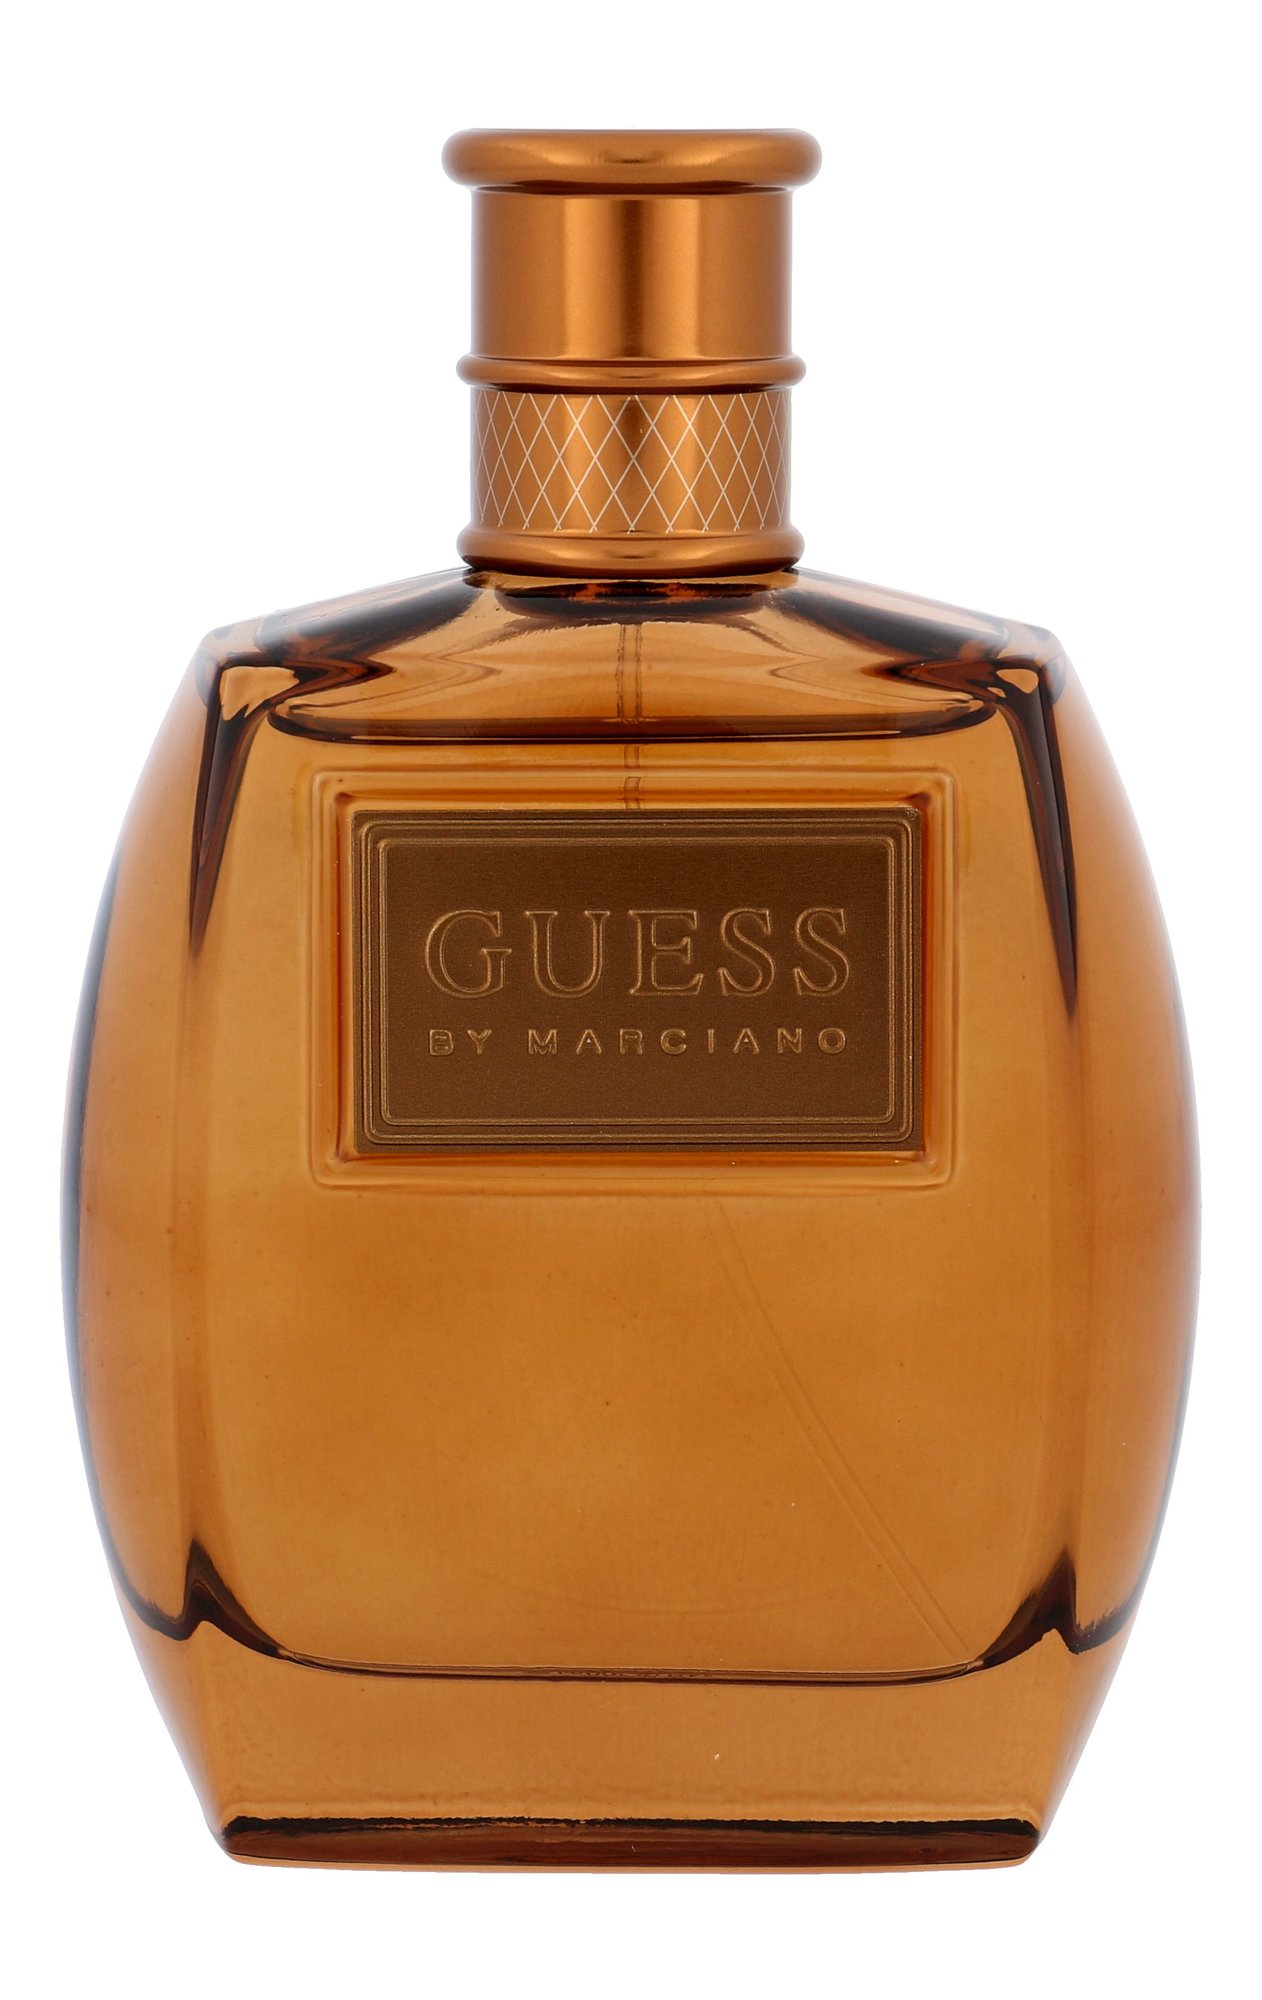 GUESS Guess by Marciano  Toaletní voda, M, 100 ml